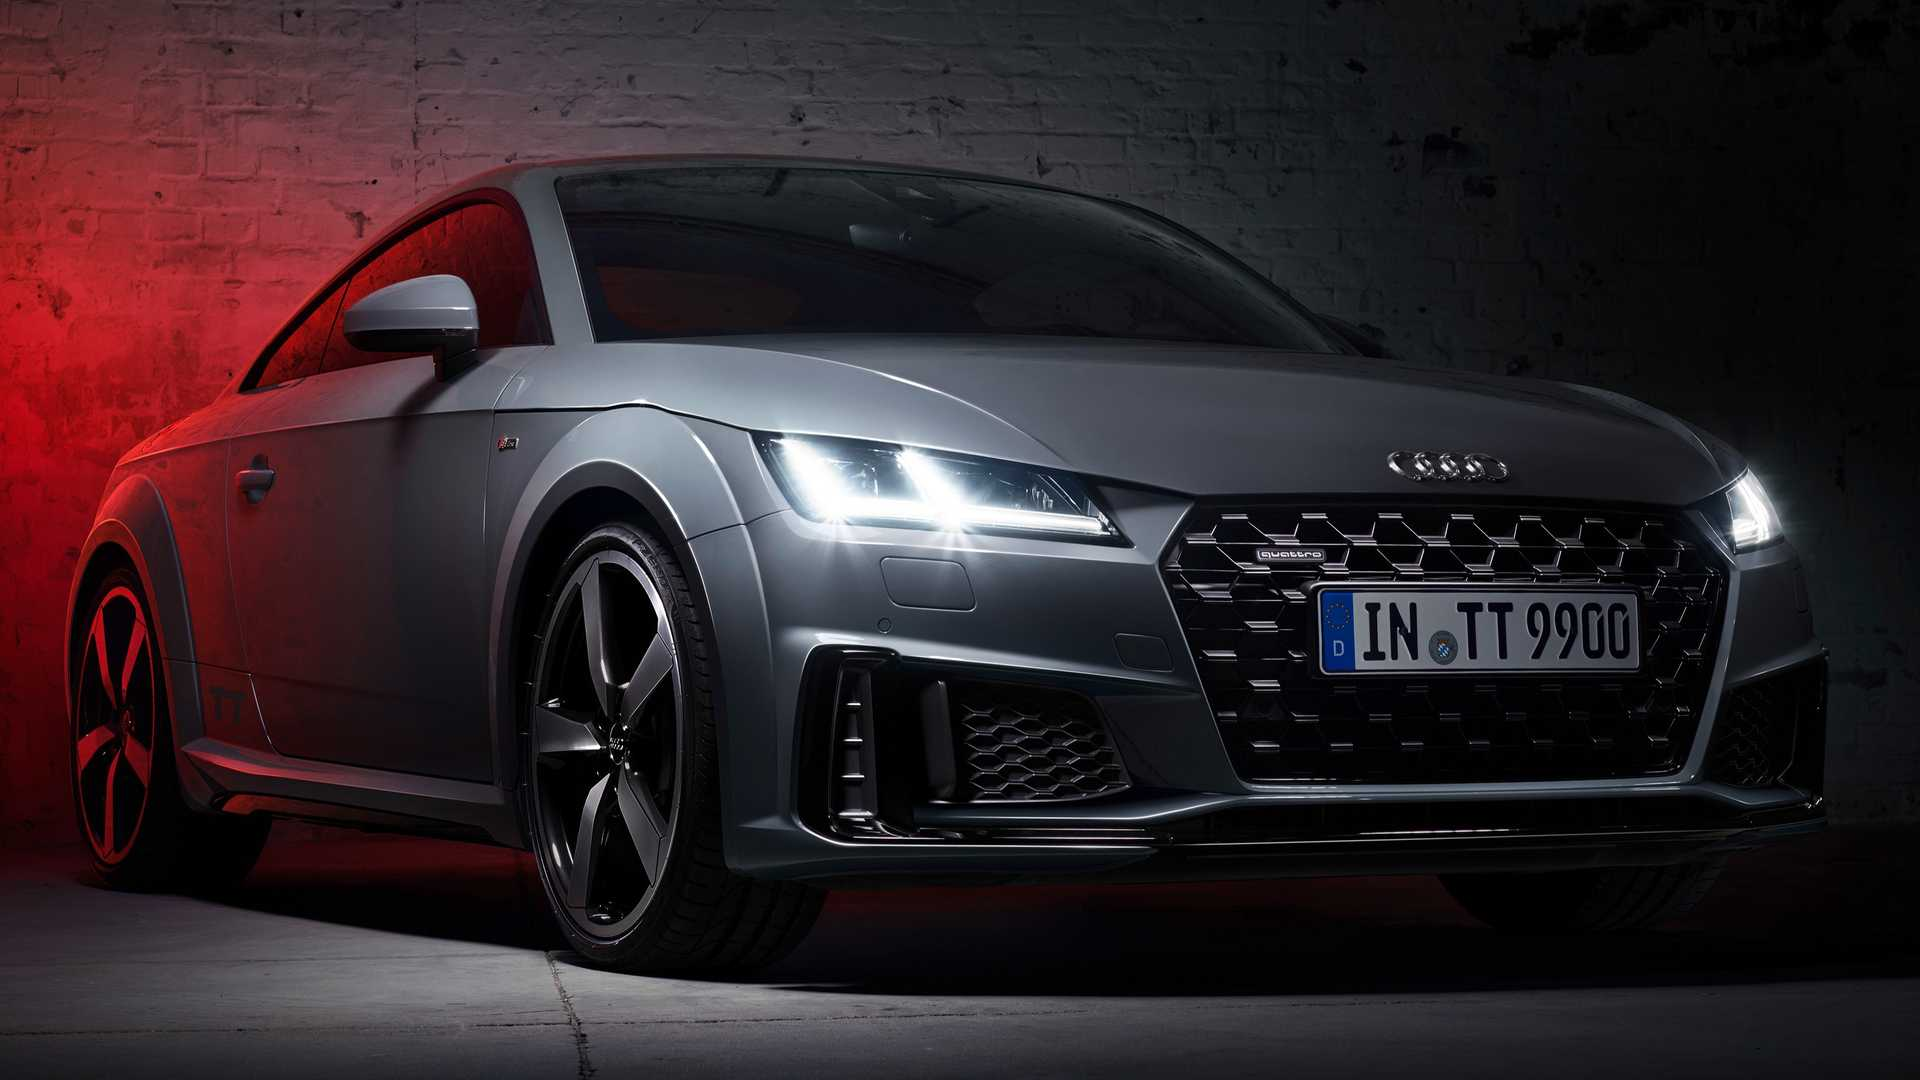 Audi Reveals TT Quantum Gray Edition, But You Can Only Buy One Online